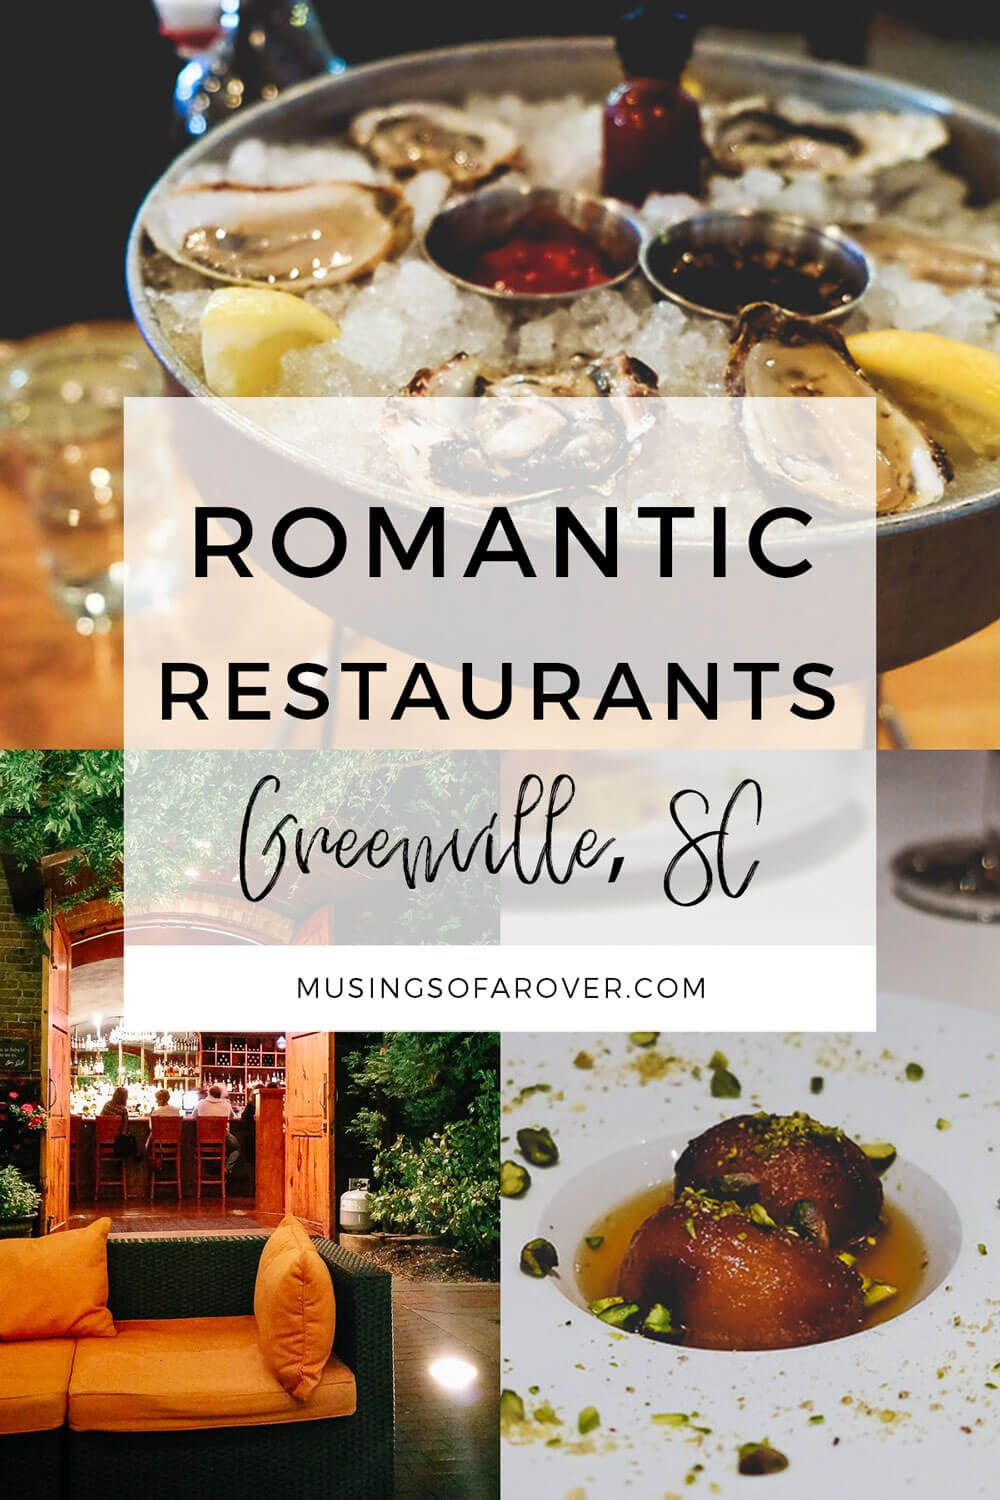 Where To Find The Best Romantic Restaurants In Greenville Sc